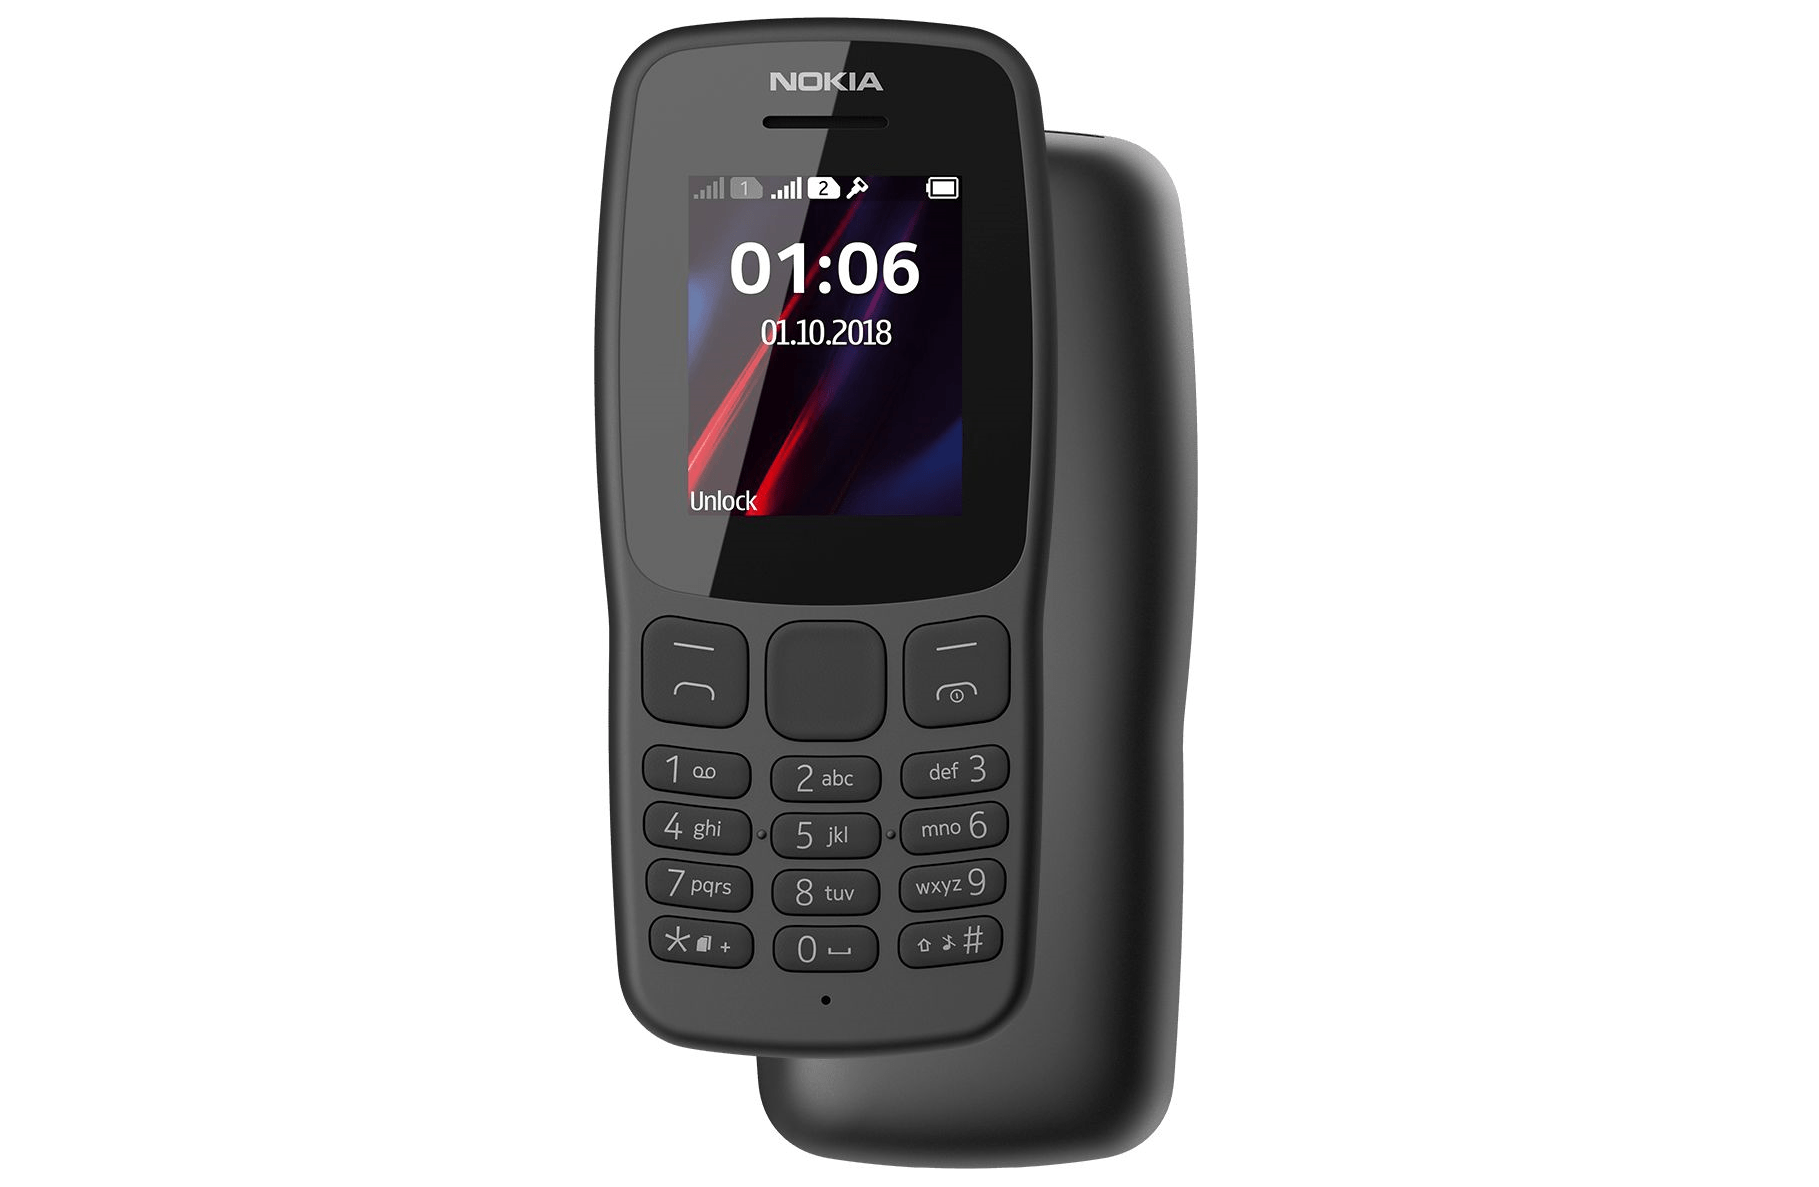 Nokia 106 is hmd global's first phone in india this year